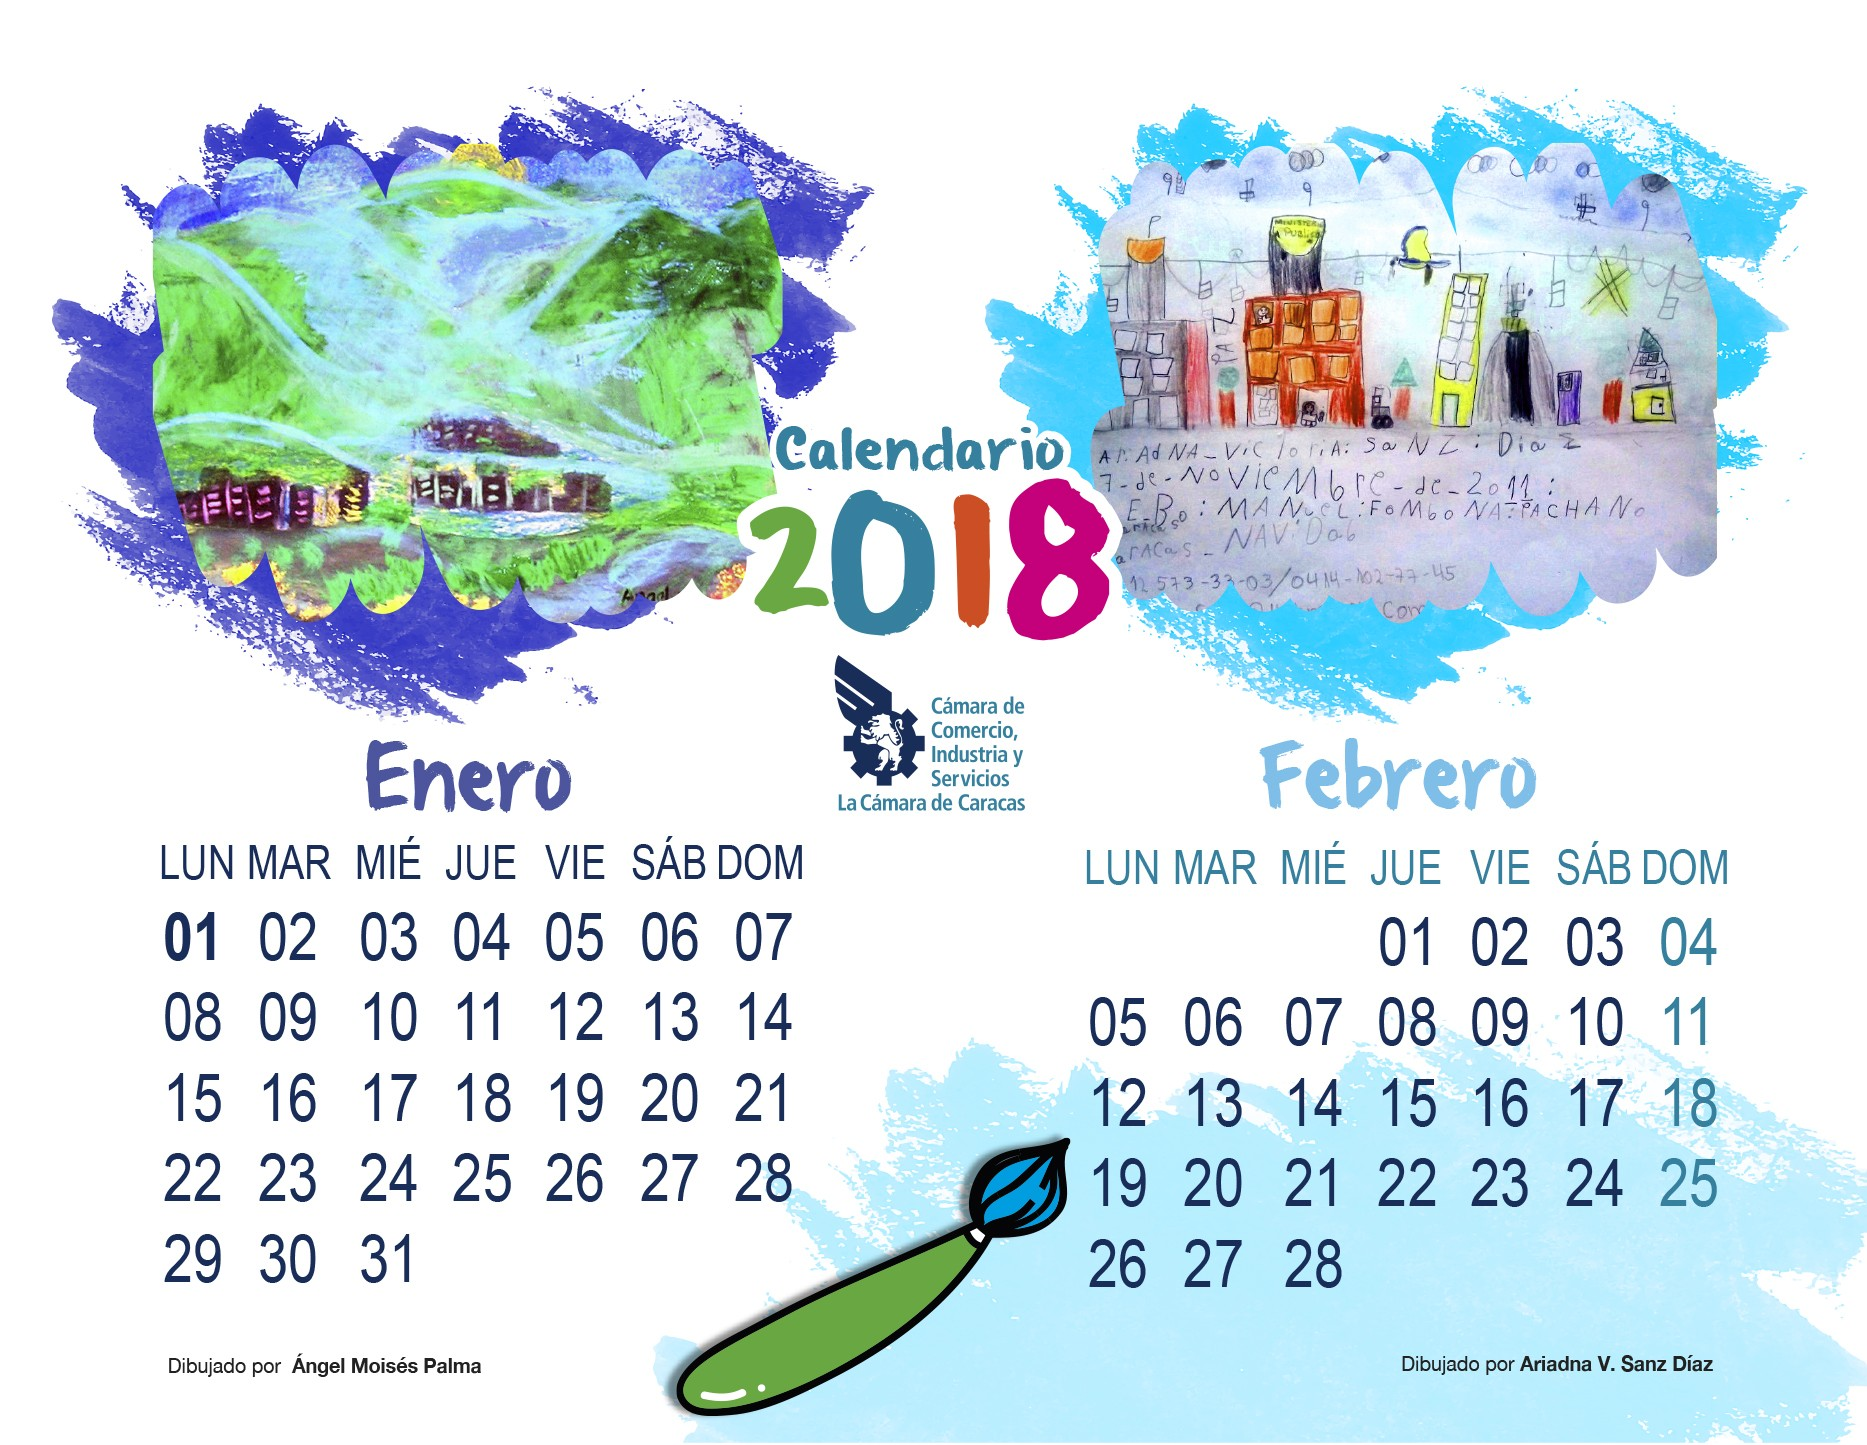 Imprimir Calendario Febrero Y Marzo 2019 Recientes Descarga Nuestro Calendario 2018 Cámara De Caracas Of Imprimir Calendario Febrero Y Marzo 2019 Actual 2019 2018 Calendar Printable with Holidays List Kalender Kalendar